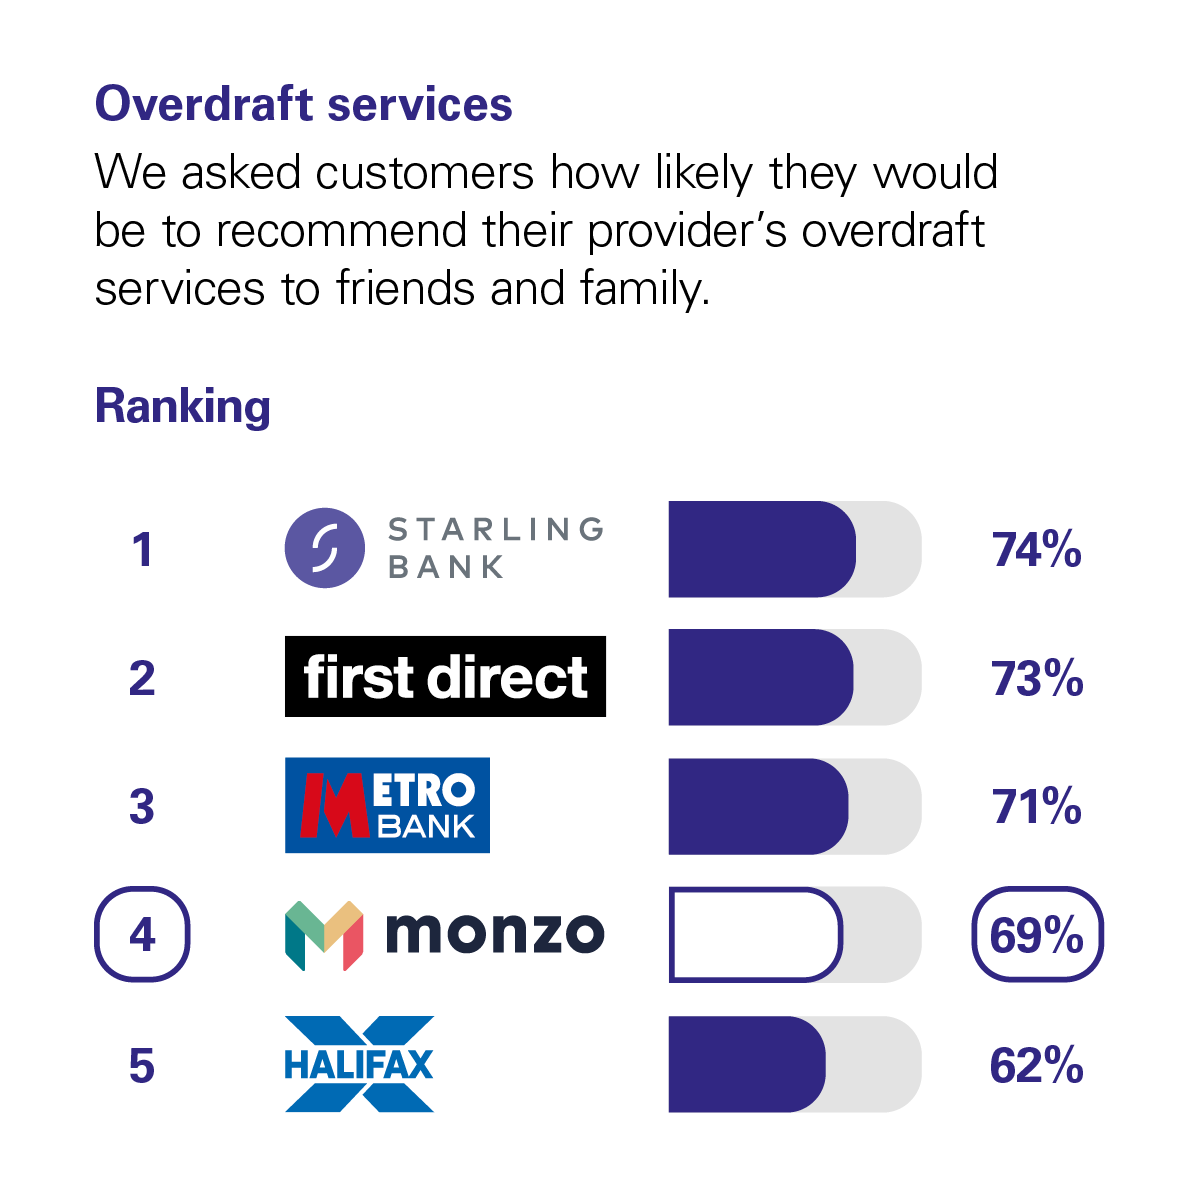 Graph showing the results of the CMA scoring of UK banks in the Overdraft Services category. The CMA asked customers how likely they would be to recommend their provider's overdraft services to friends and family. The rankings with percentage scores are: 1 Starling, with 74%. 2 First Direct, with 73%. 3 Metro Bank, with 71%. 4 Monzo, with 69%. 5 Halifax, with 62%.